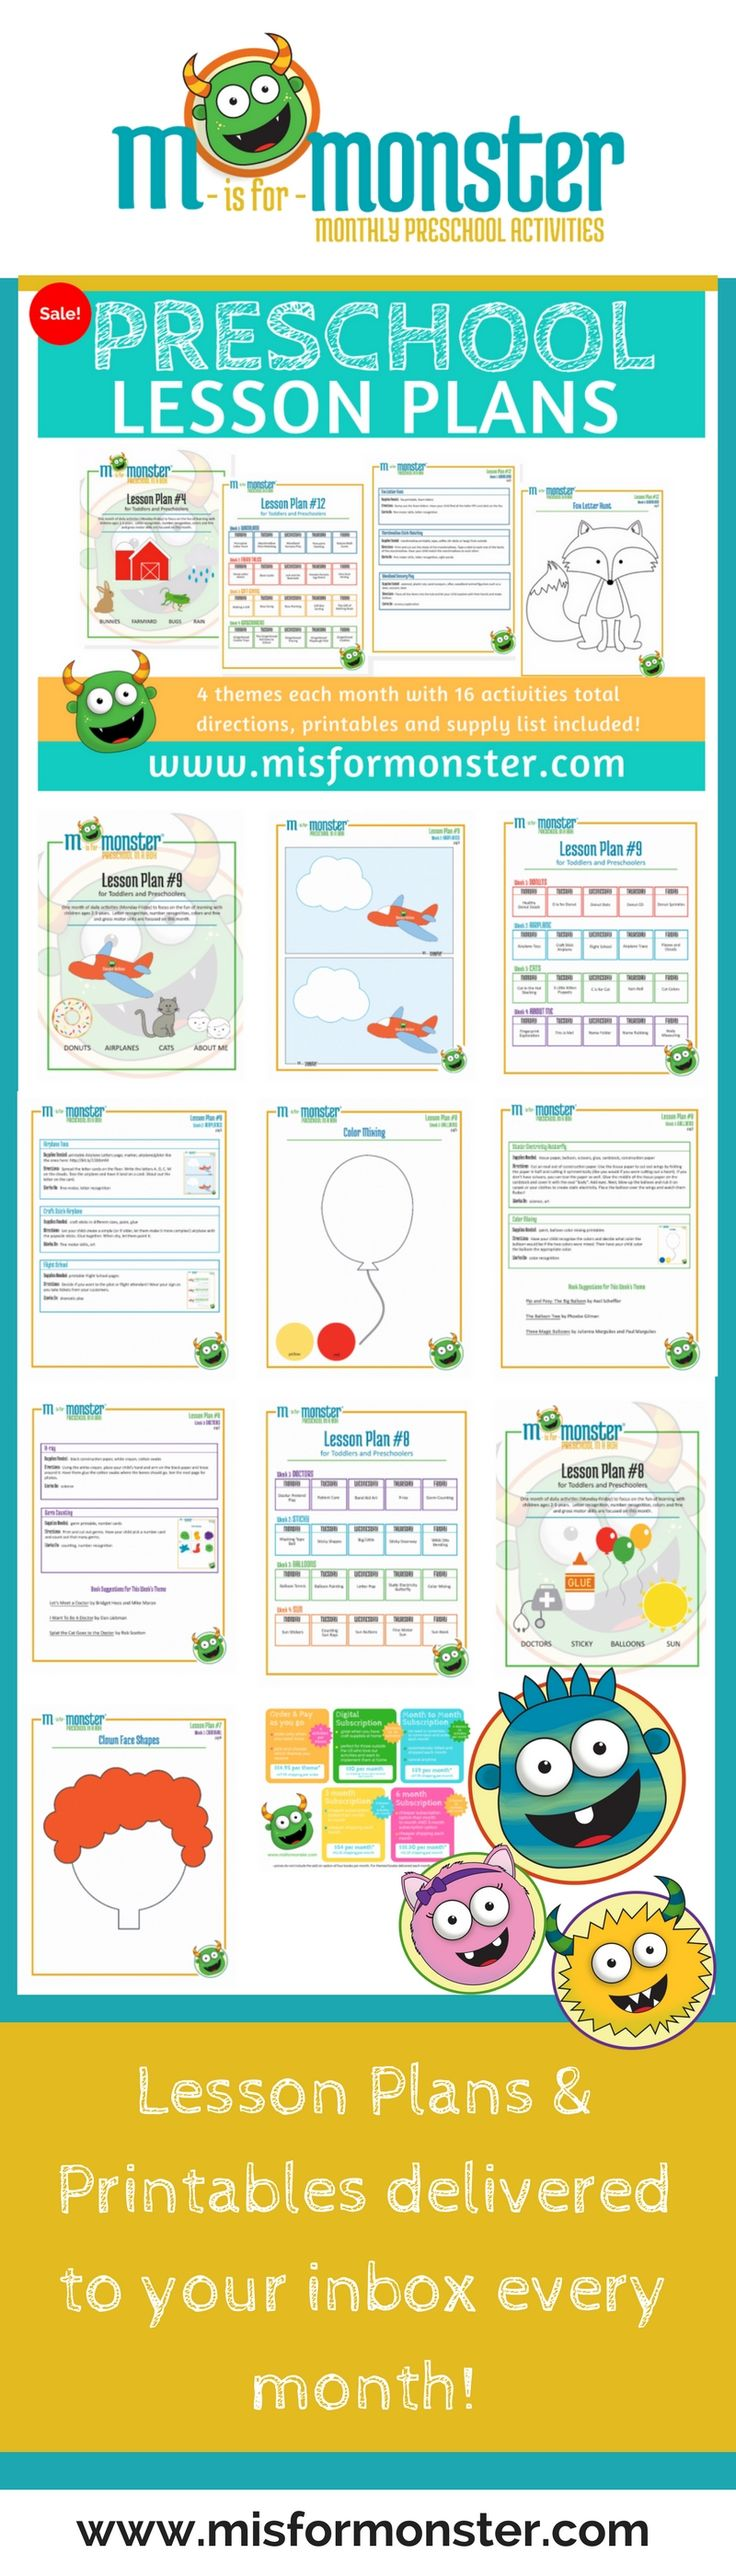 Preschool Lesson Plans from M is for Monster delivered right to your email every month. 4 themes each month with 16 activities total. You get the lesson plans, printables and supplies list delivered to your inbox every month!